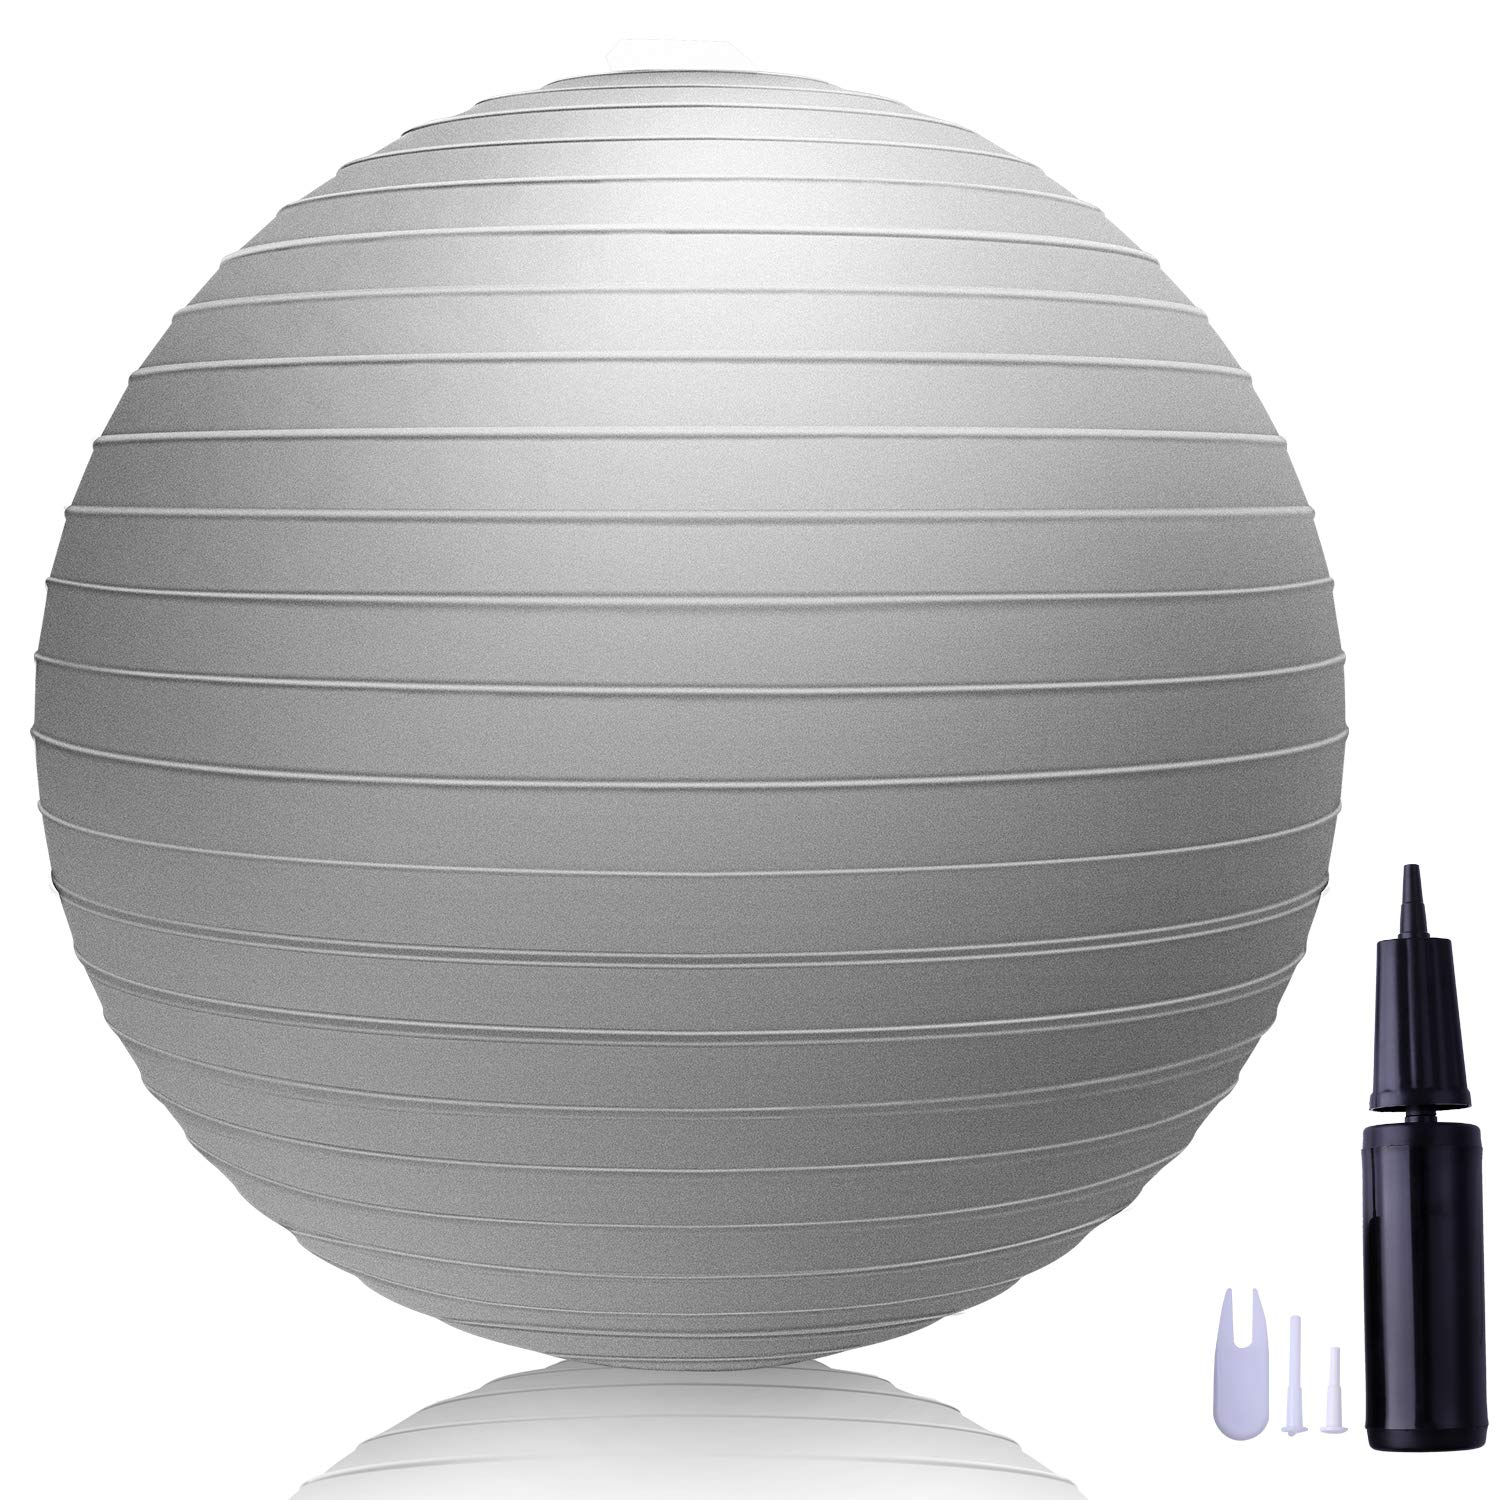 LAKIBOLE 75cm Exercise Ball Anti-Burst Yoga Ball with Quick Pump for Office & Home & Gym (Gray)